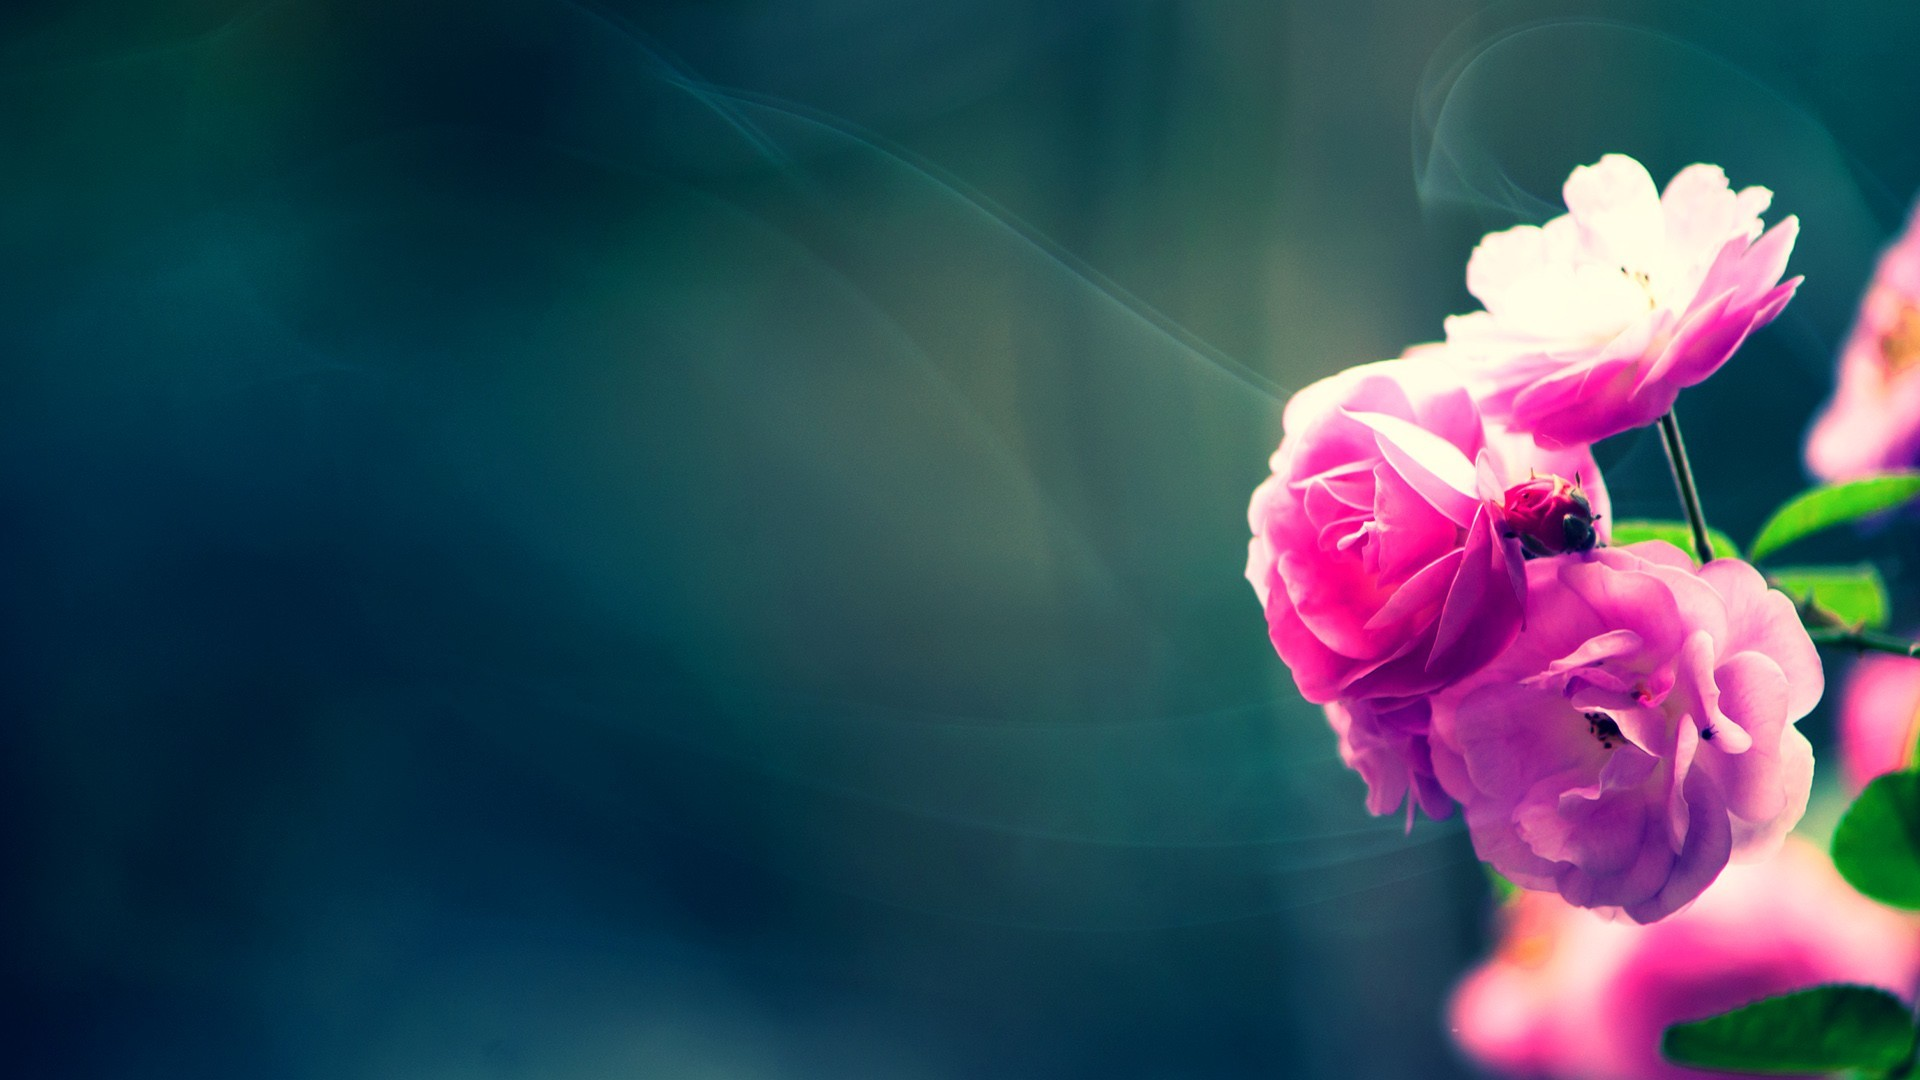 Hd Flower Wallpapers 70 Background Pictures